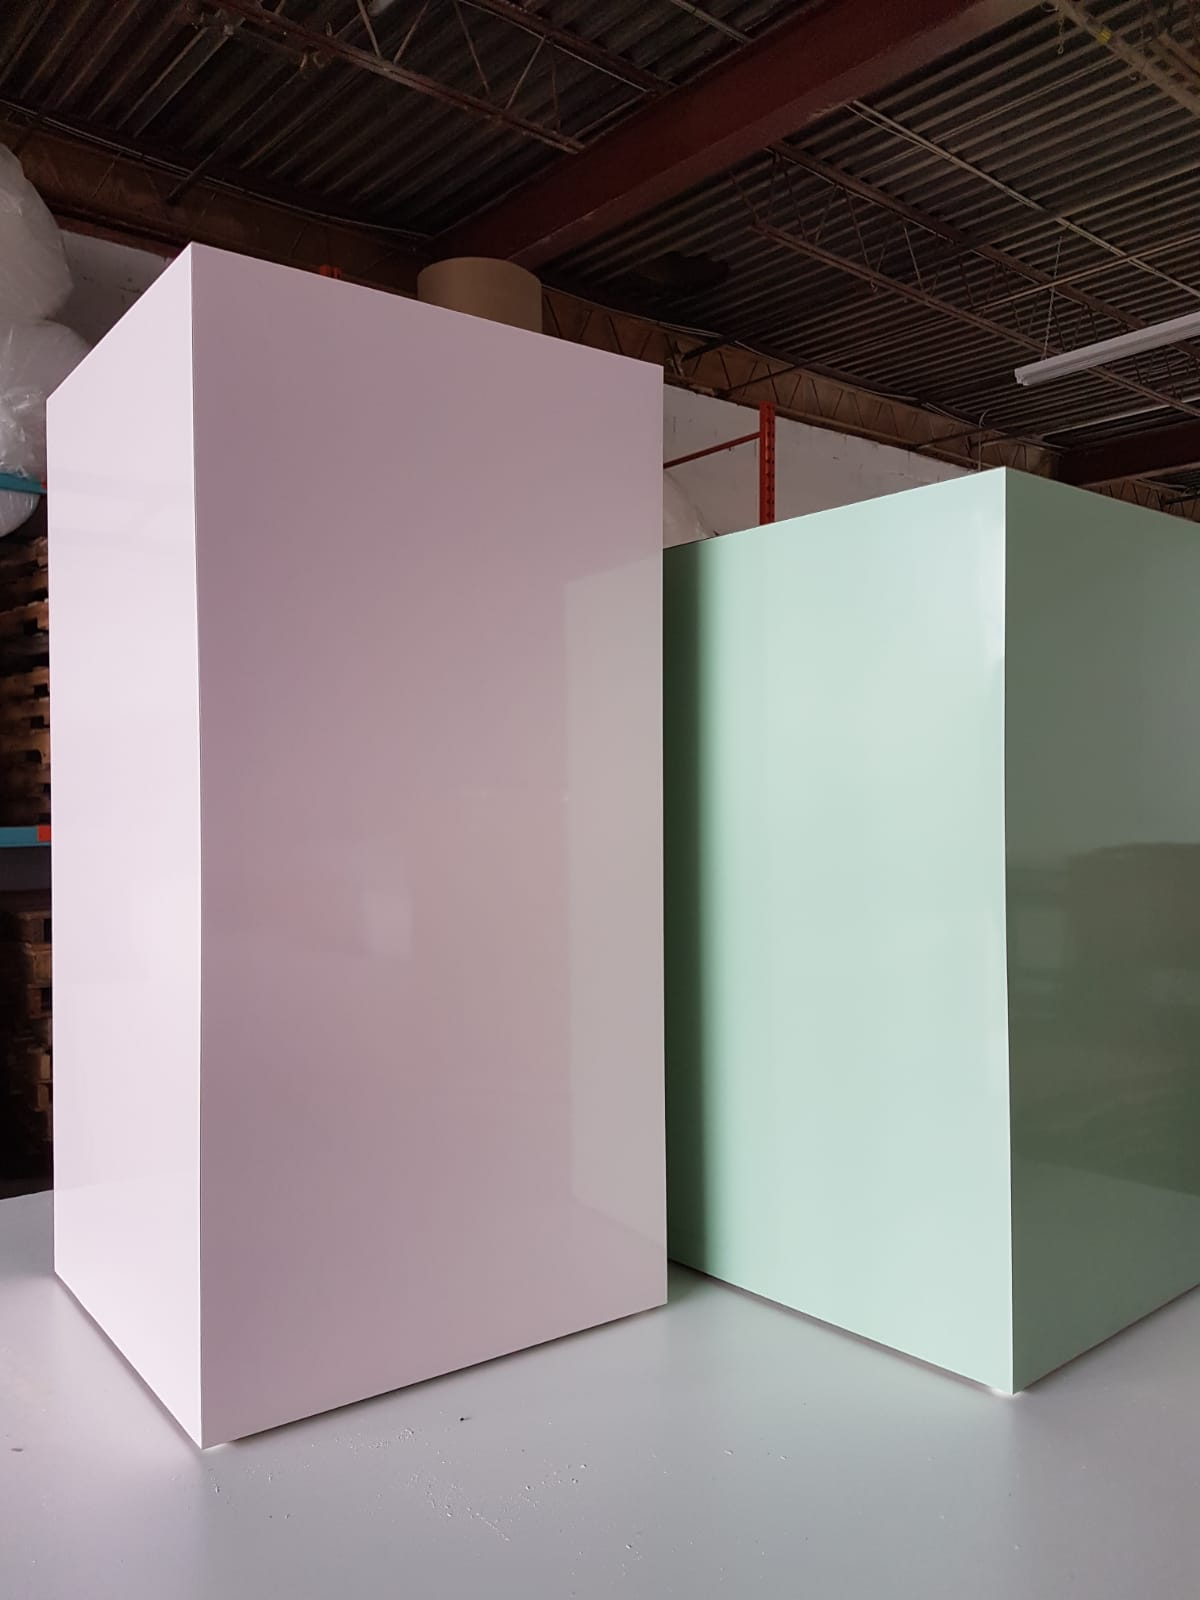 Custom pink and green plinths